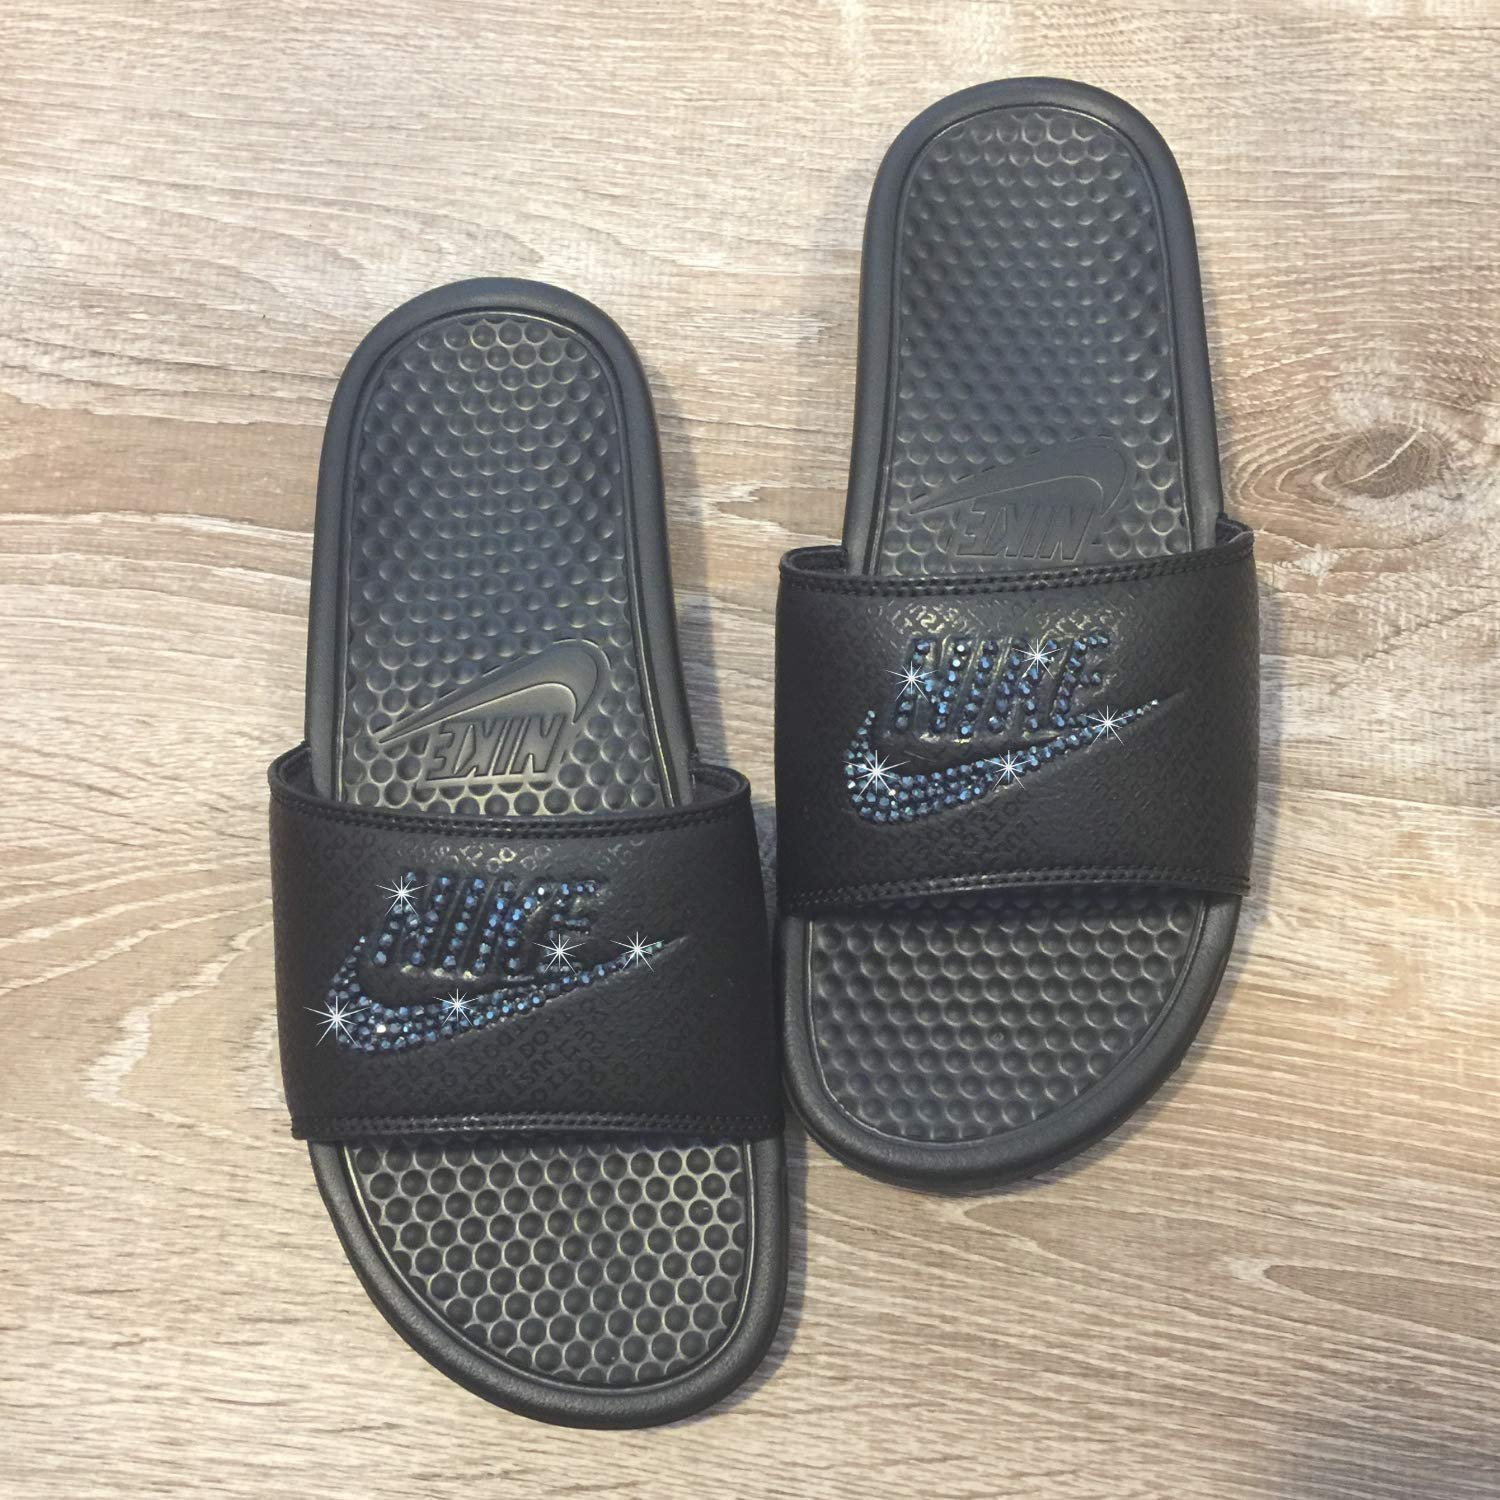 369b9ea8707f Amazon.com  Bling NIKE SLIDES with Swarovski Crystals ALL BLACK Women s  NIKE Benassi JDI Slides Custom Bedazzled Slip On Sandal Shoes  Handmade